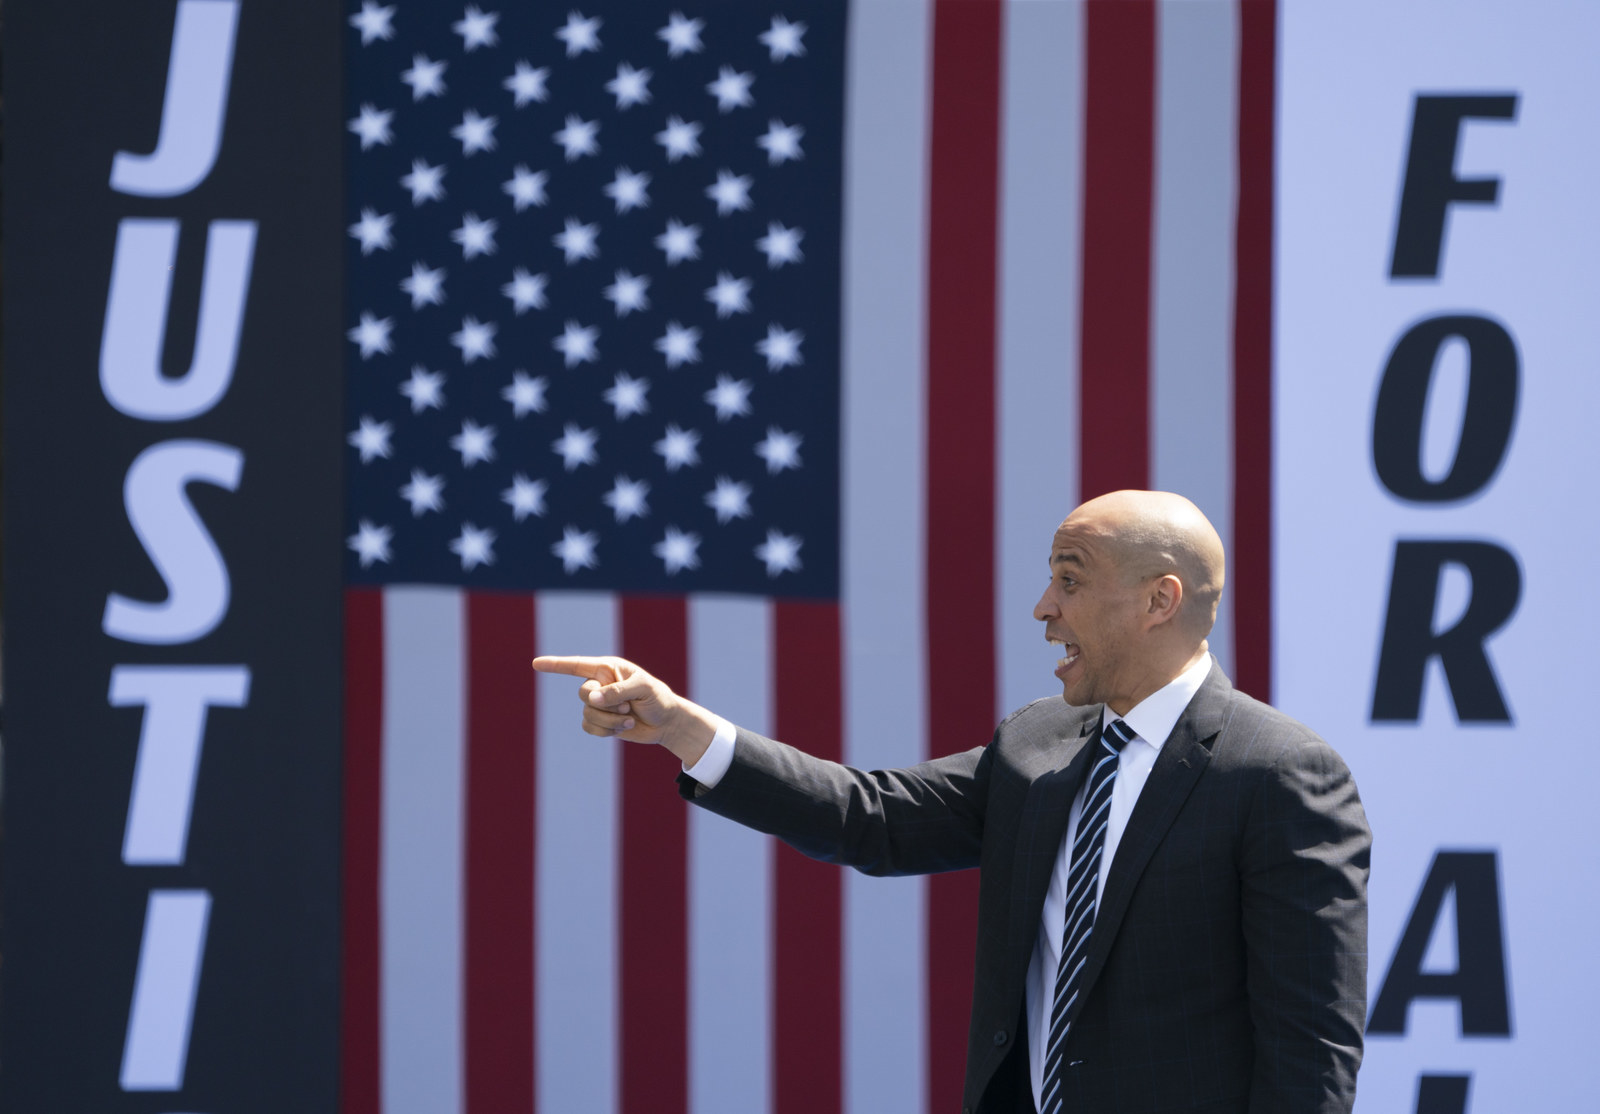 Cory Booker's New Plan For Voting Rights Is A Glimpse At The Activist Spirit Of His Candidacy